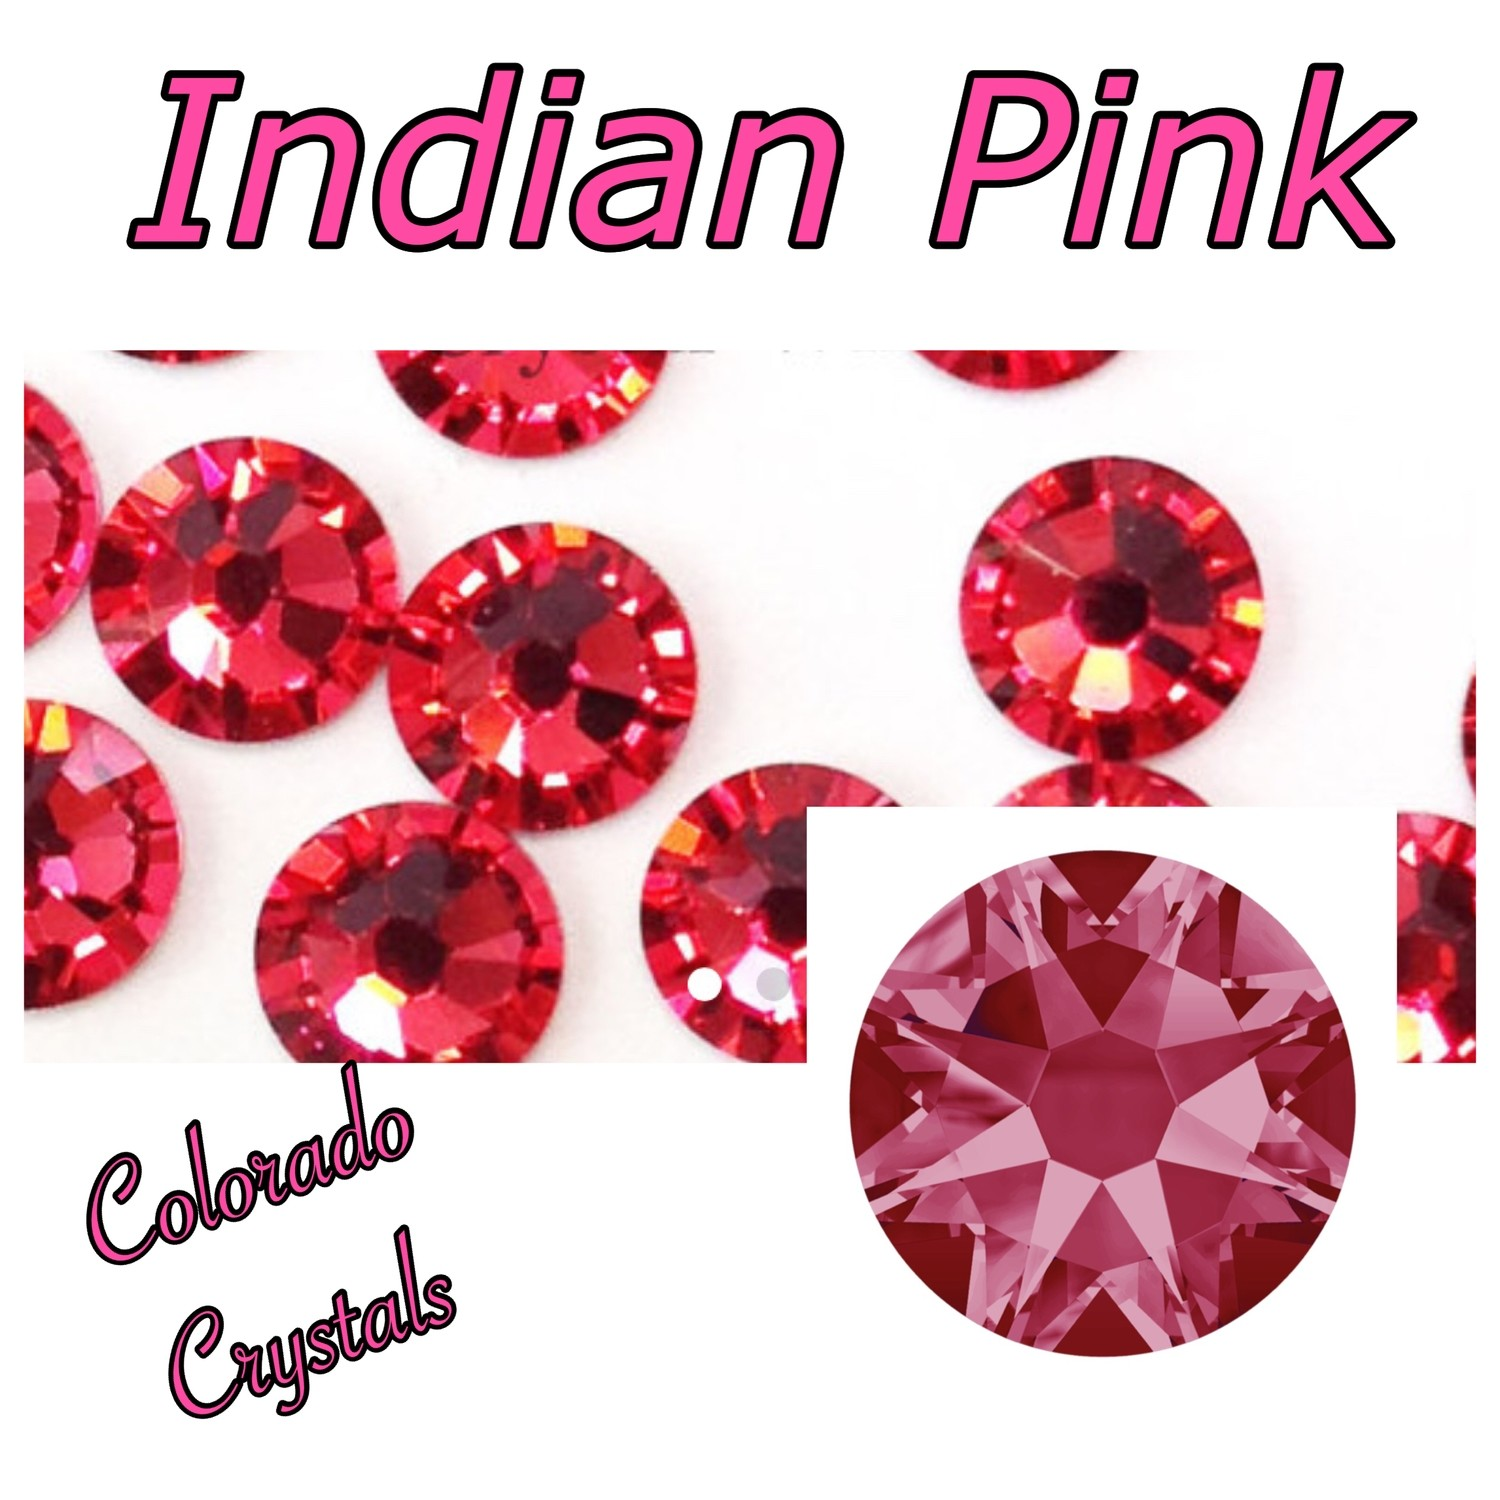 Indian Pink 16ss 2088 Limited